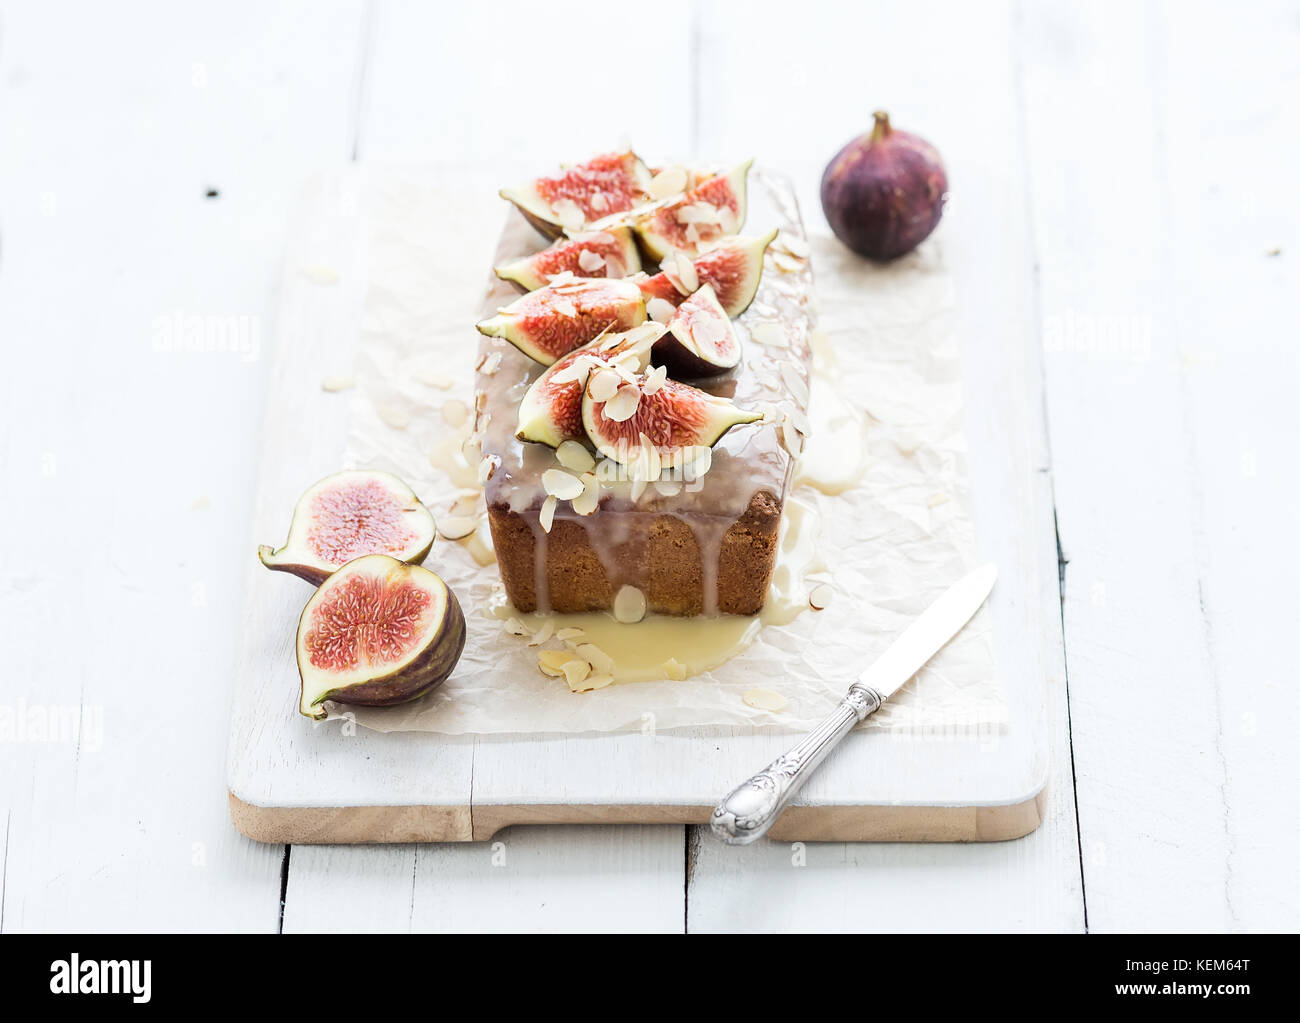 Loaf cake with figs, almond and white chocolate on wooden serving board over grunge background, selective focus. - Stock Image